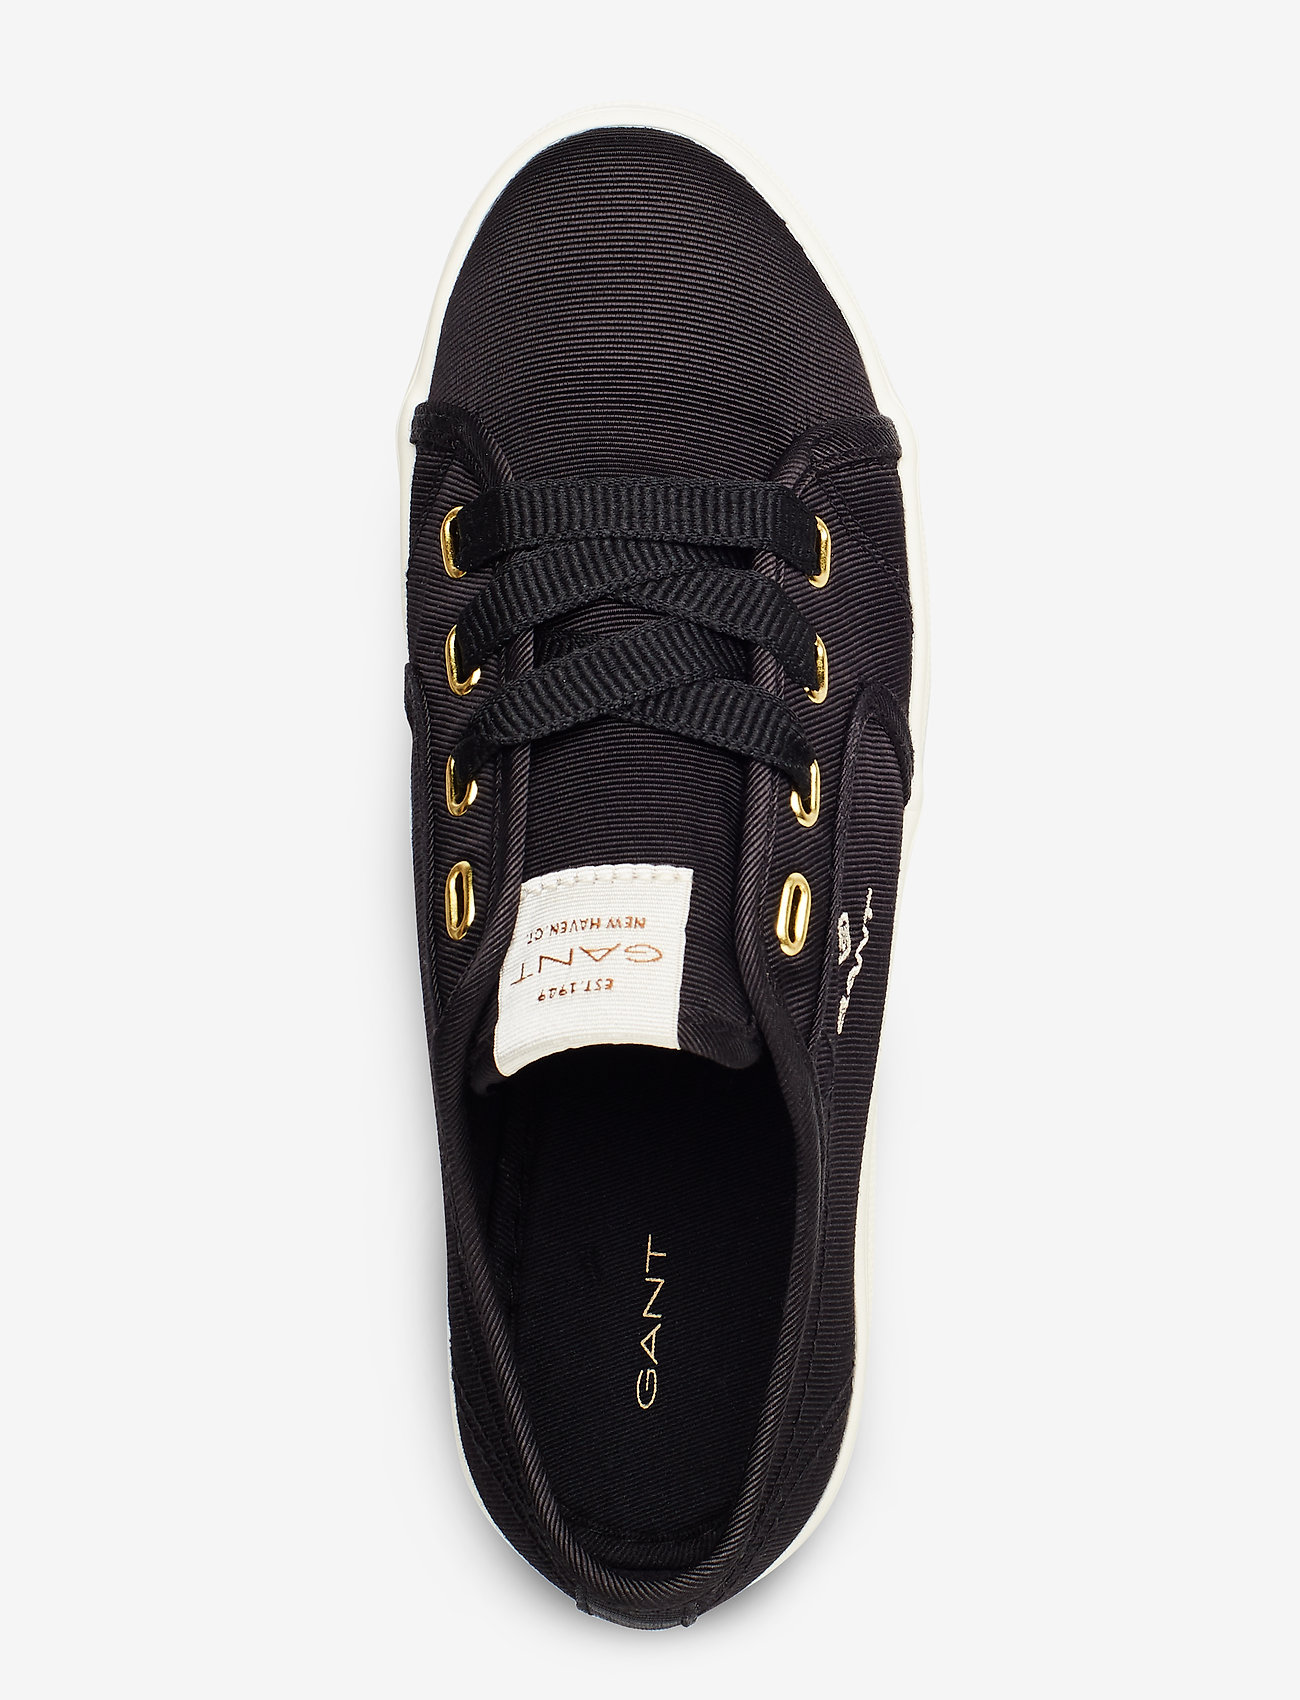 Leisha Low Lace Shoes (Black) - GANT